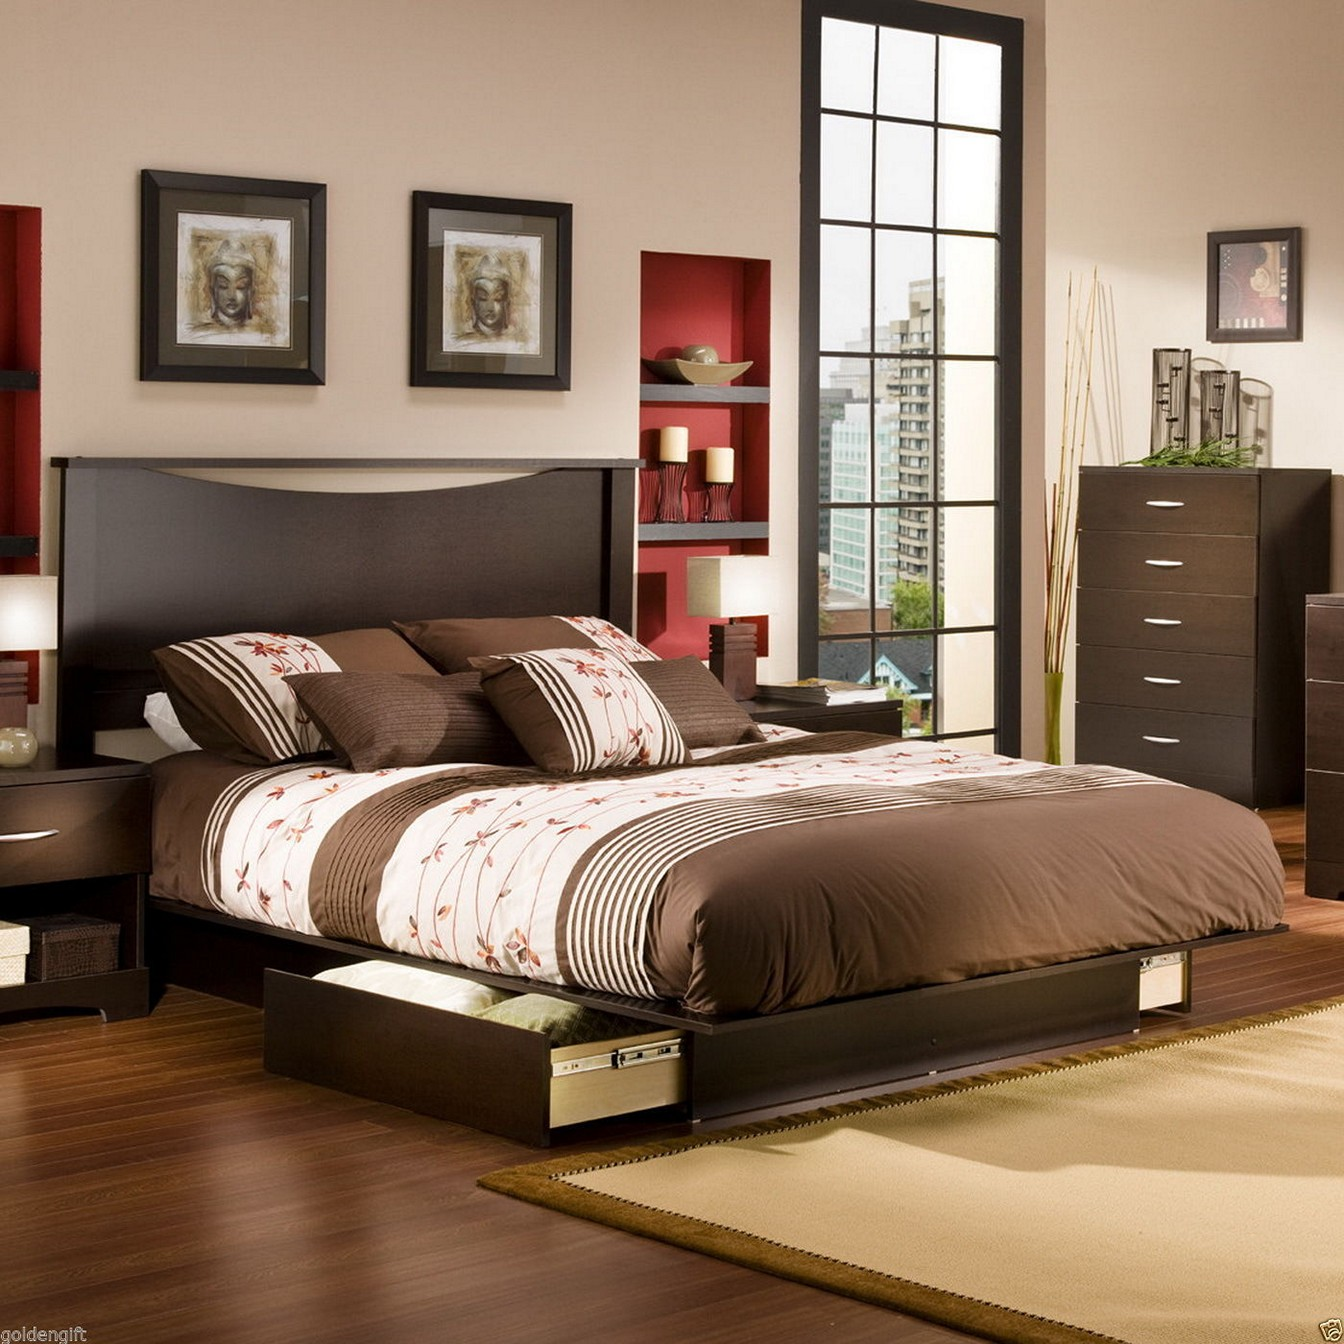 Picture of: Bed Storage Ideas Wood